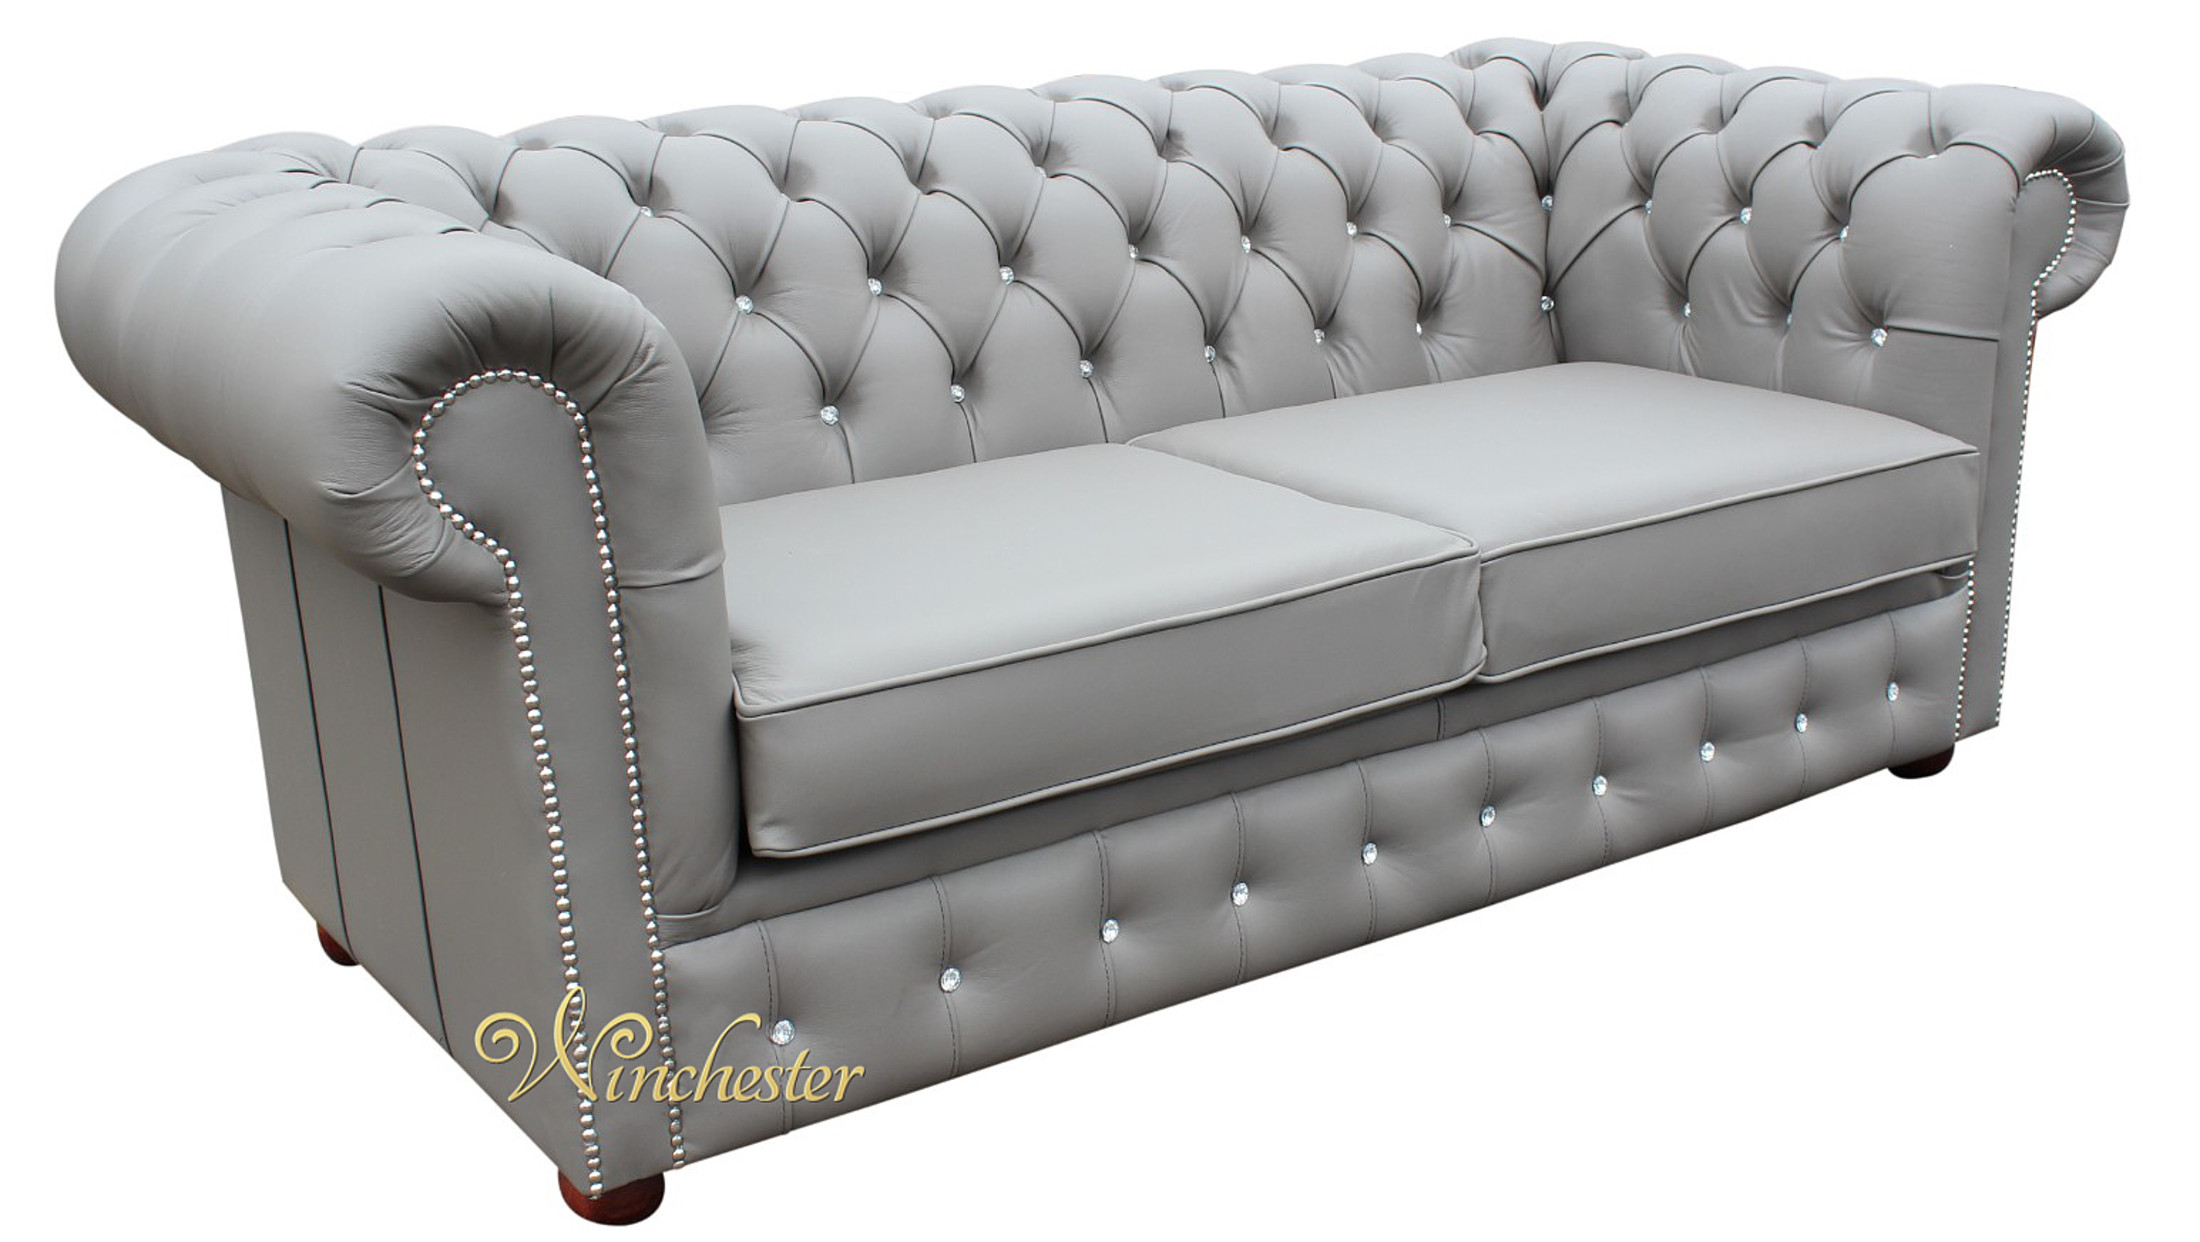 Picture of: Chesterfield 2 Seater Sofa Bed Swarovski Crystallized Diamond Moon Mist Leather Offer